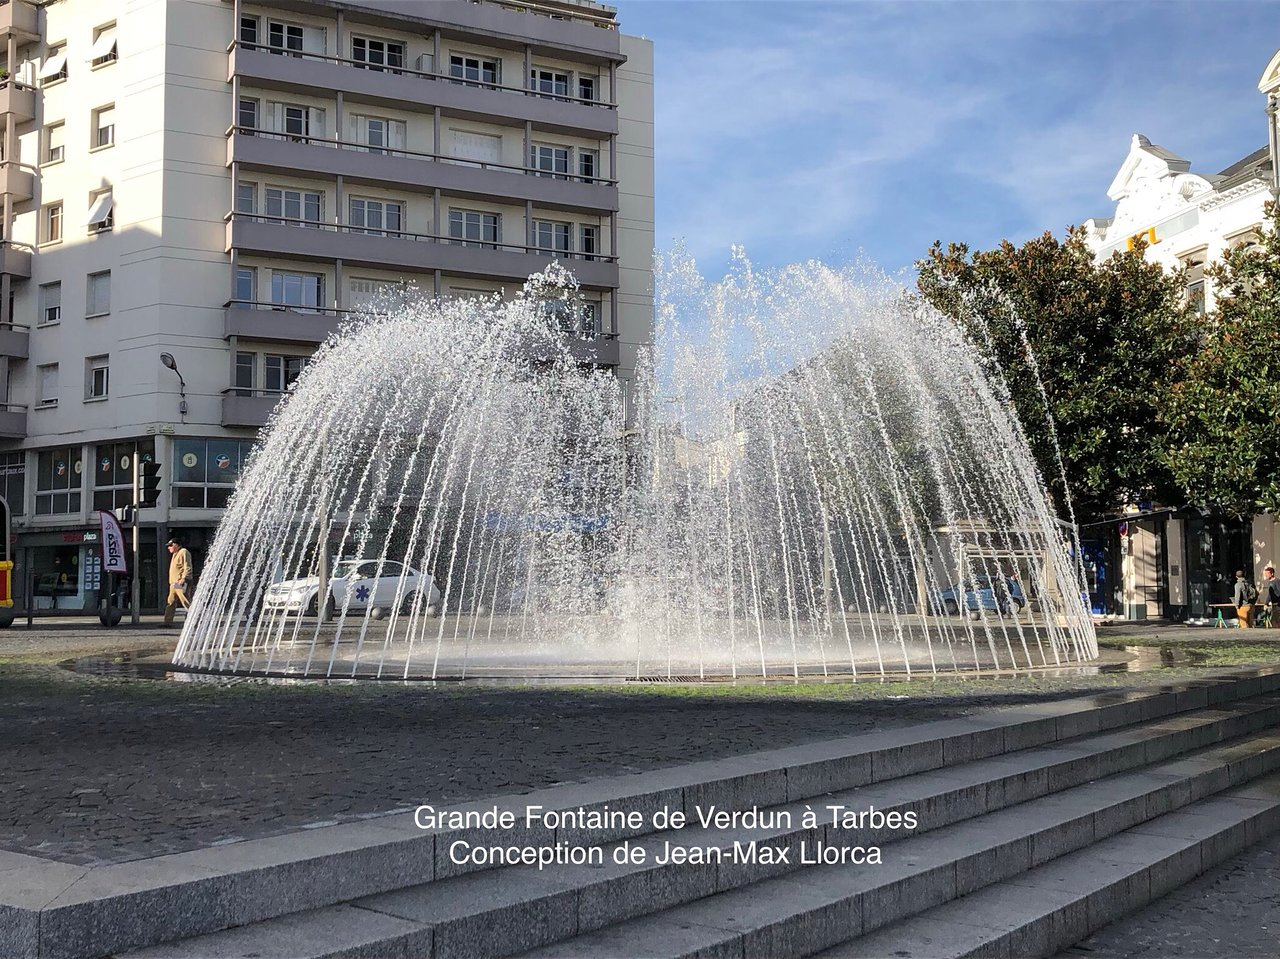 Conception Jardin Élégant Grande Fontaine De Verdun Tarbes 2020 All You Need to Of 49 Luxe Conception Jardin